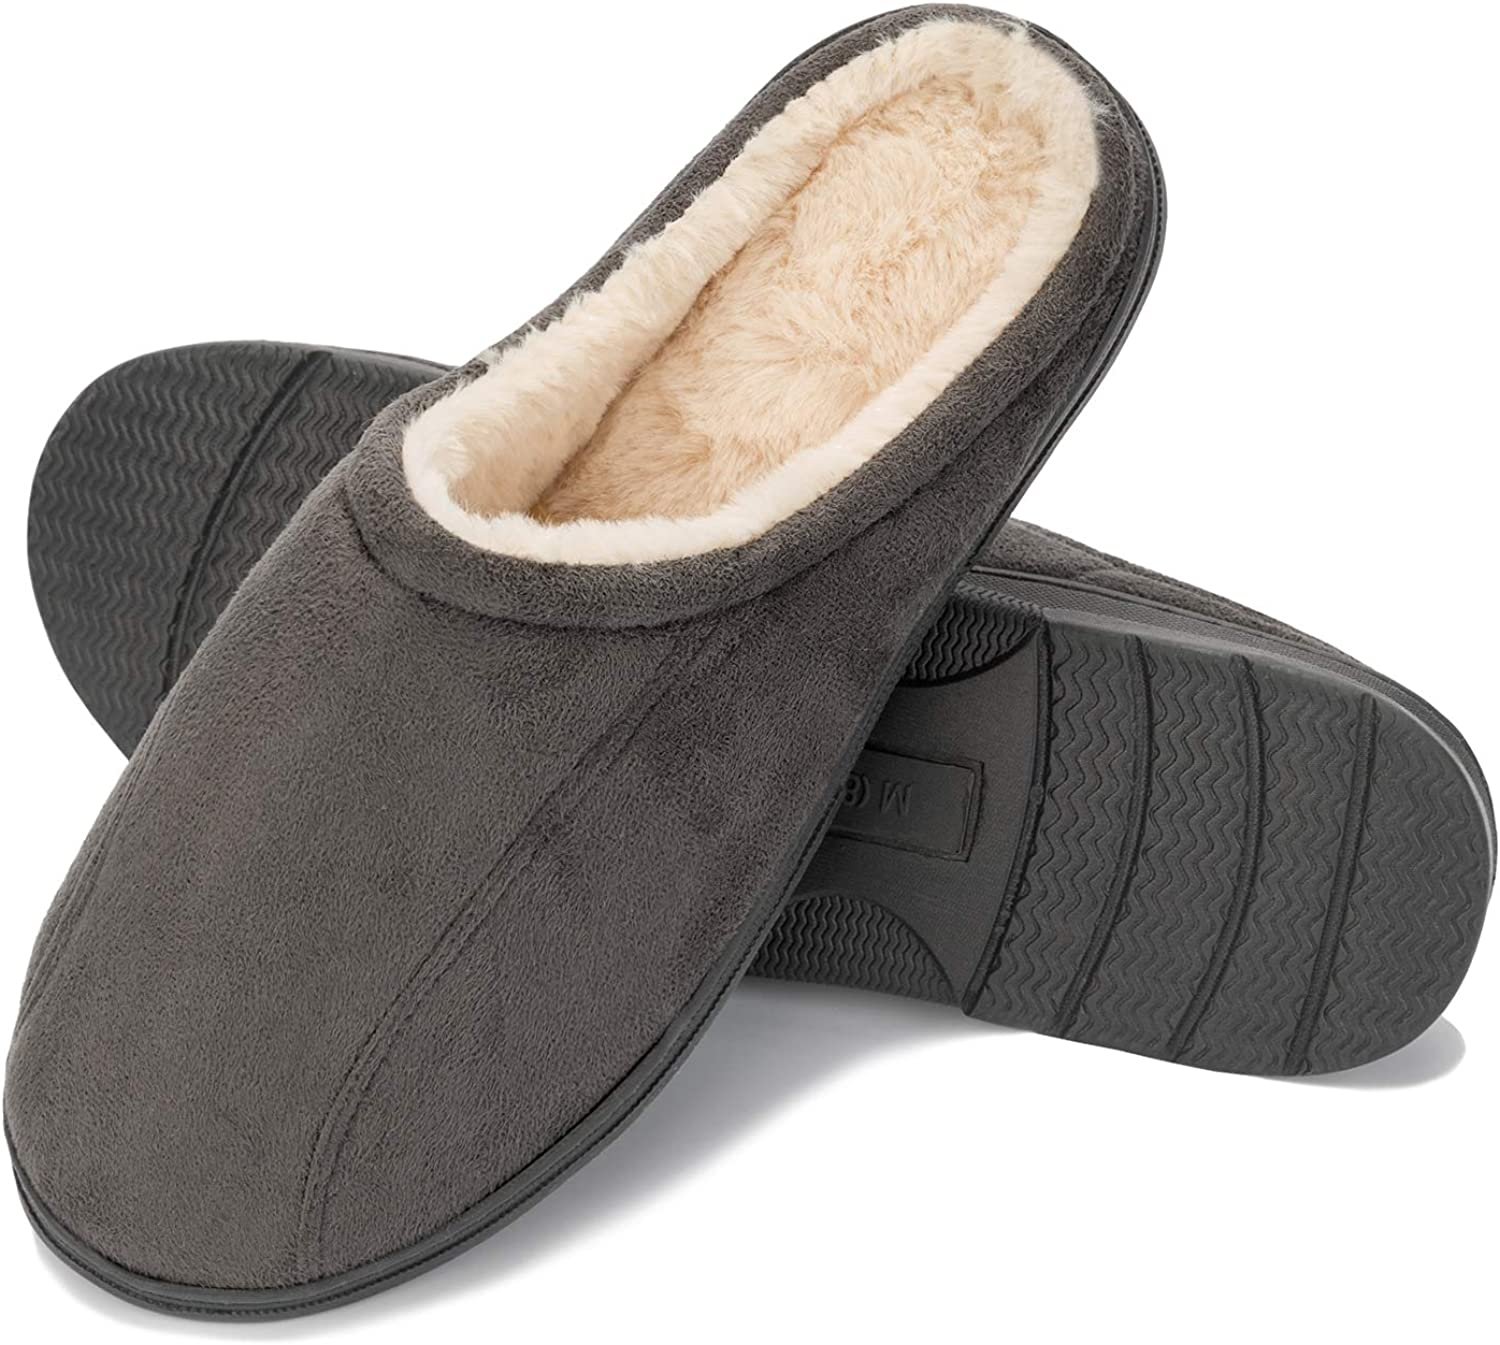 WFL Men's Comfort Memory Foam Slippers Home Shoes Warm Plush Lining for Indoor/Outdoor